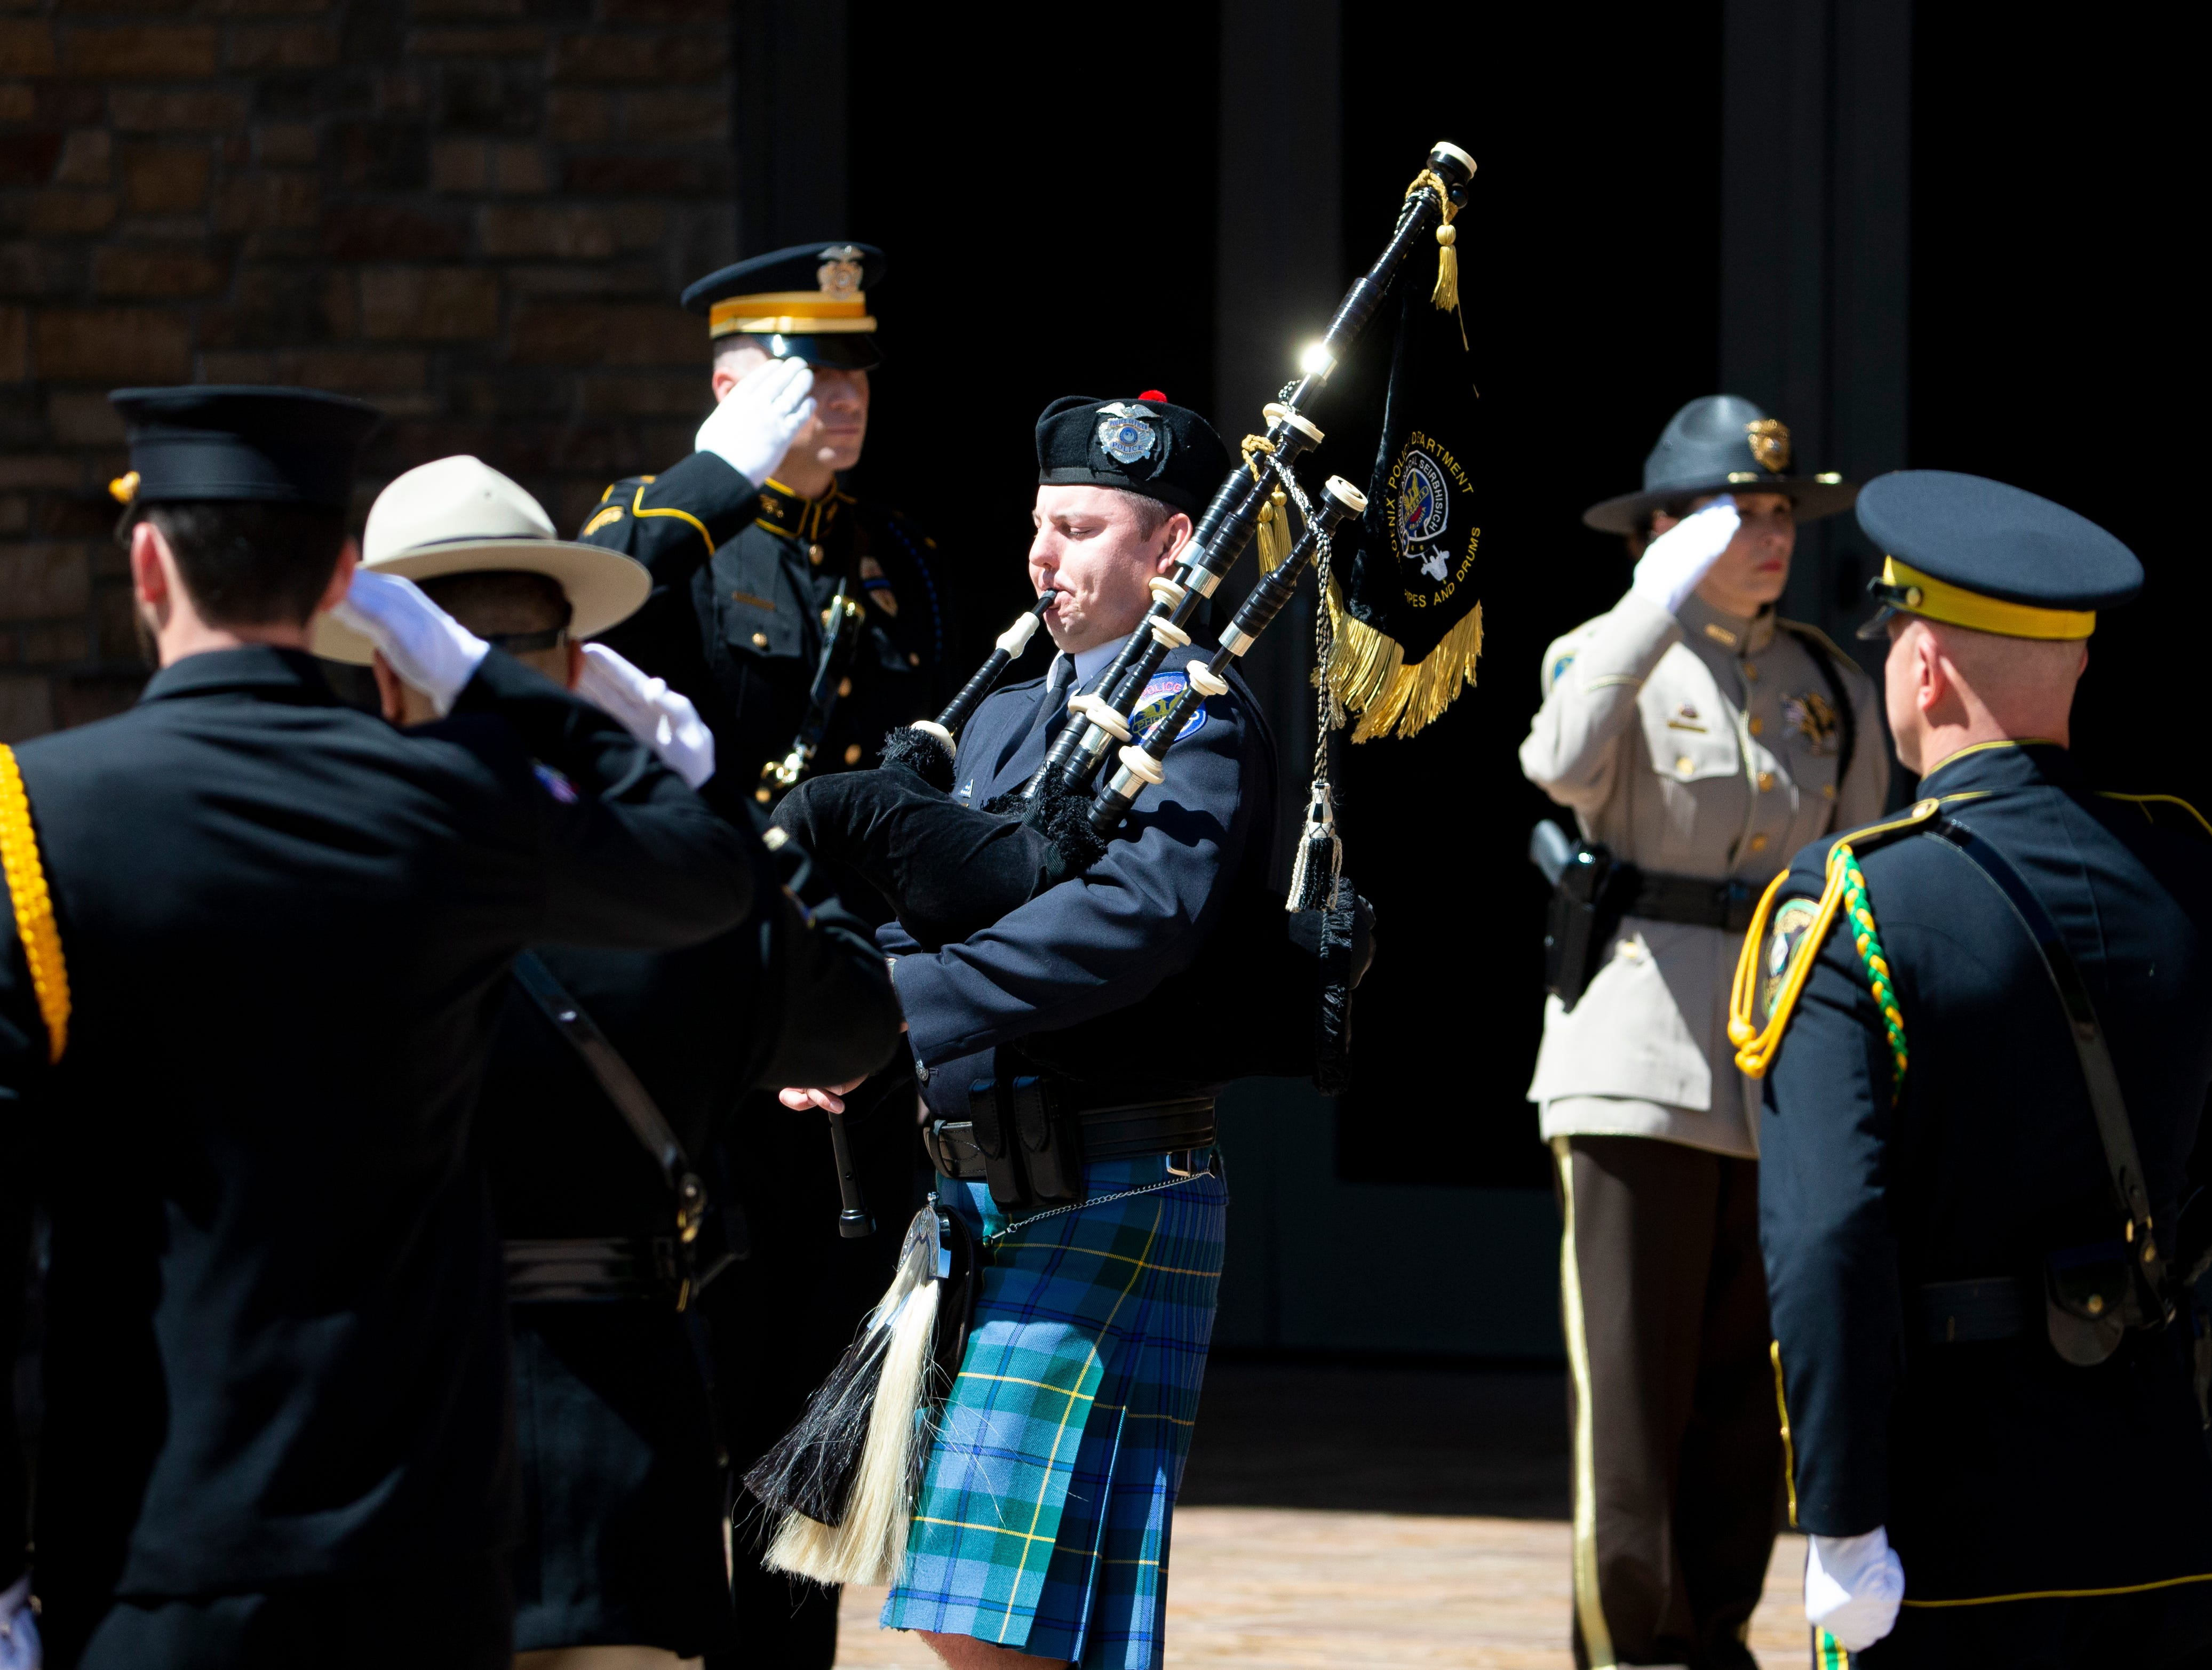 Bagpipes are played during funeral services for Officer Paul Rutherford at Christ's Church of the Valley in Peoria on March 28, 2019. Rutherford was killed in a crash March 21.